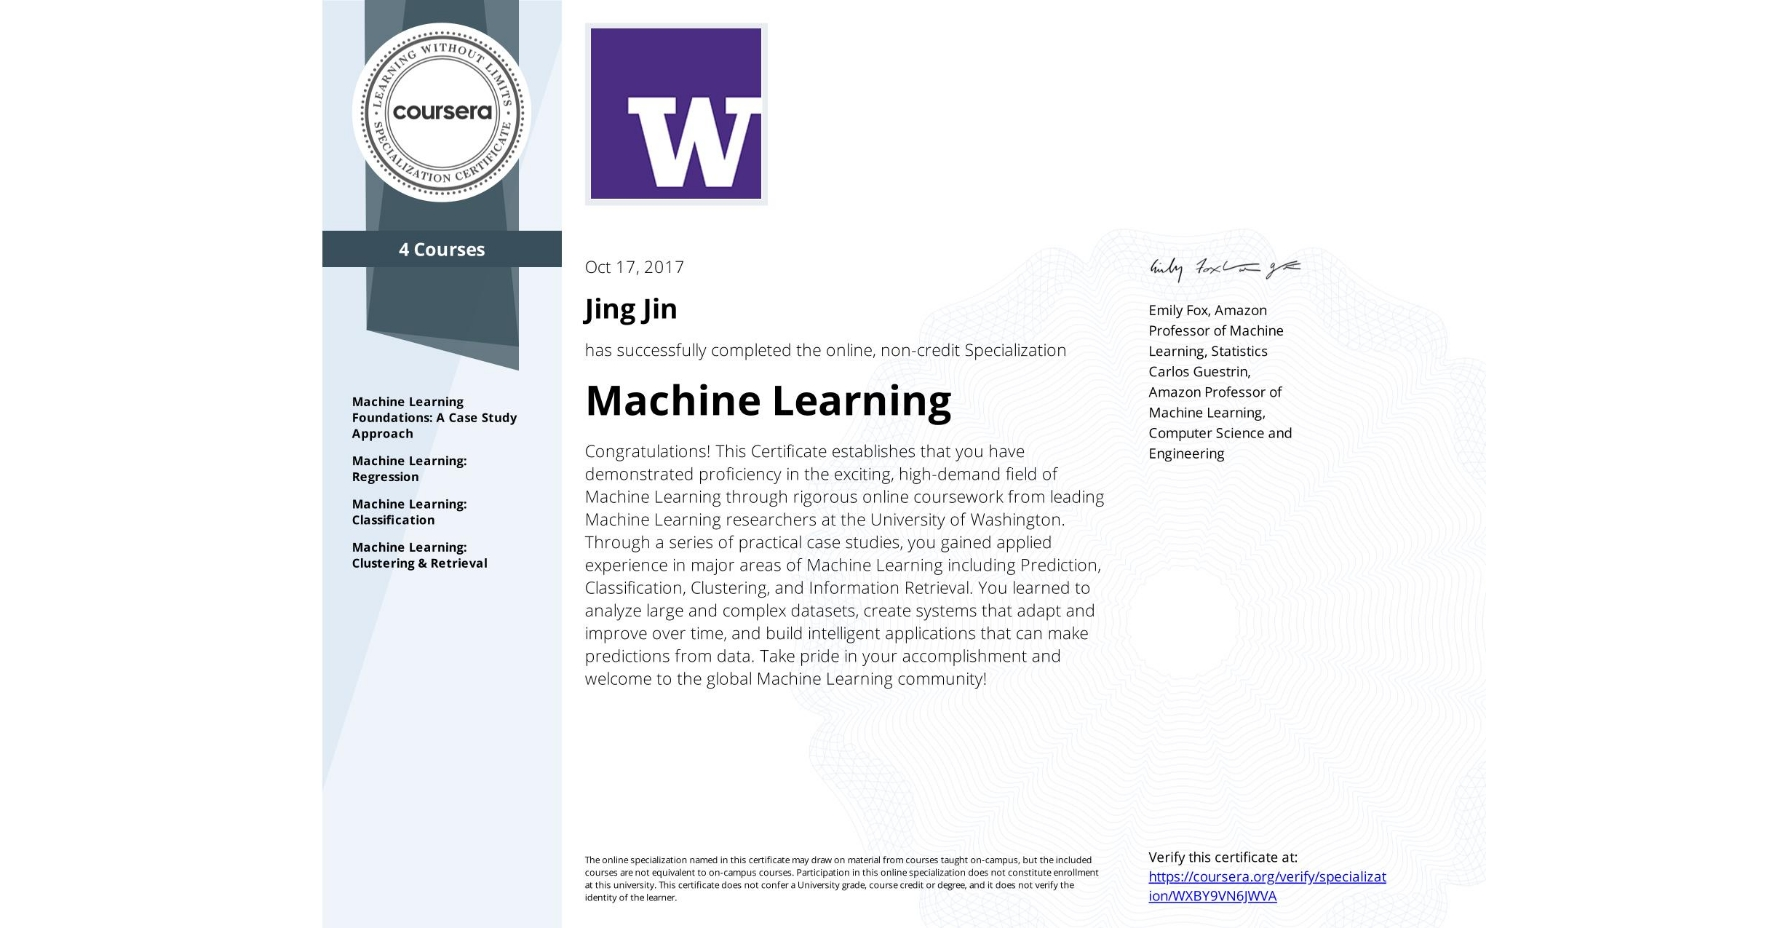 View certificate for Jing Jin, Machine Learning, offered through Coursera. Congratulations! This Certificate establishes that you have demonstrated proficiency in the exciting, high-demand field of Machine Learning through rigorous online coursework from leading Machine Learning researchers at the University of Washington. Through a series of practical case studies, you gained applied experience in major areas of Machine Learning including Prediction, Classification, Clustering, and Information Retrieval. You learned to analyze large and complex datasets, create systems that adapt and improve over time, and build intelligent applications that can make predictions from data. Take pride in your accomplishment and welcome to the global Machine Learning community!